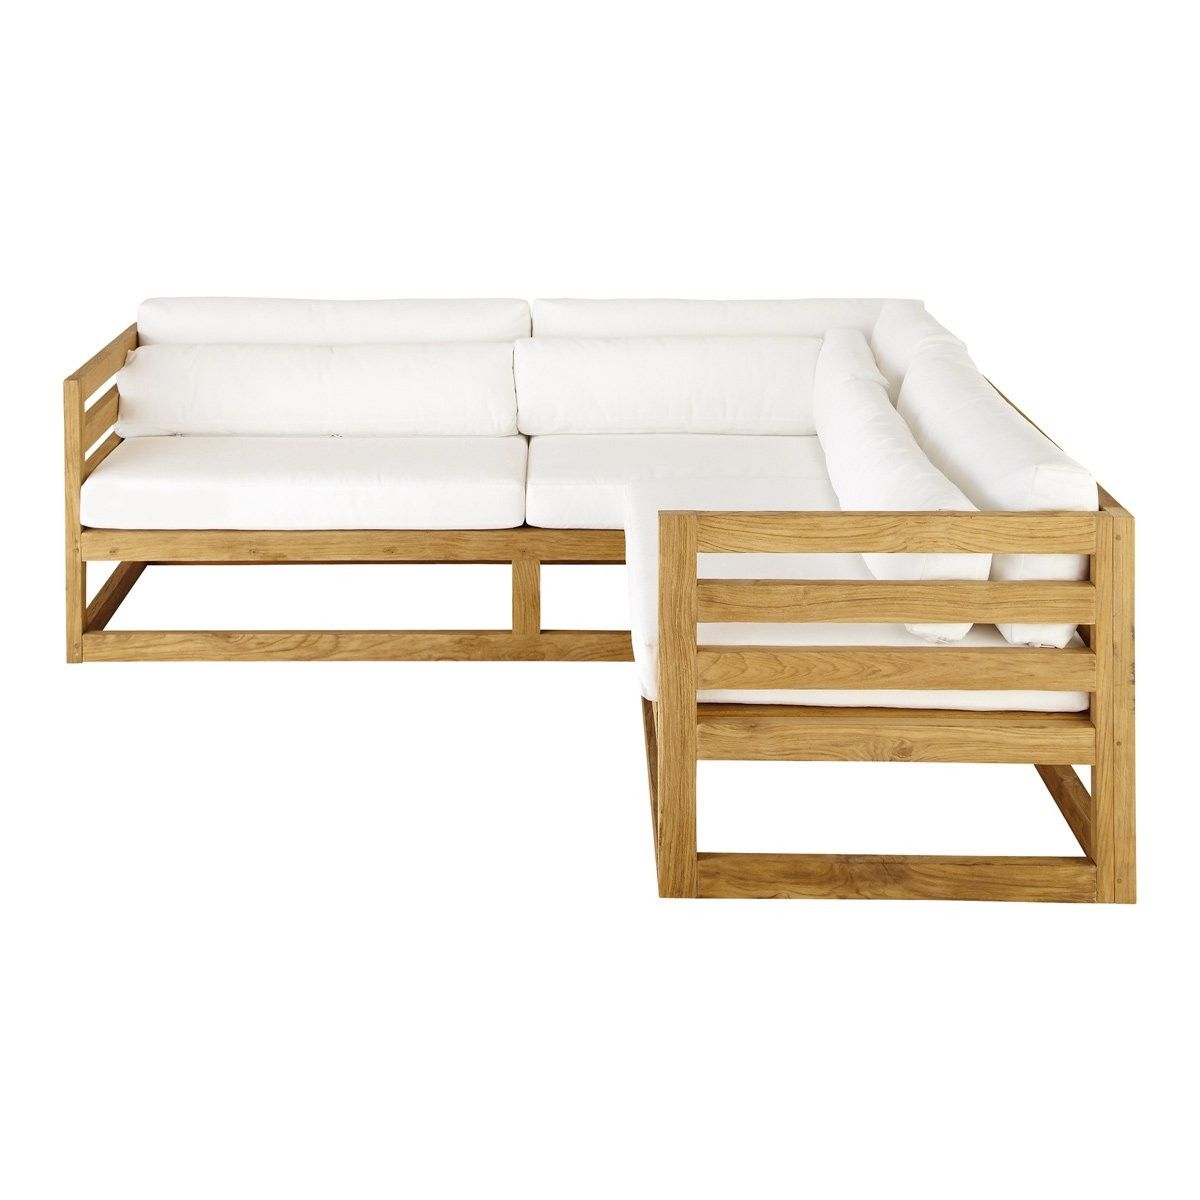 white wood sofa set ercol cosenza reviews 24 simple wooden to use in your home keribrownhomes